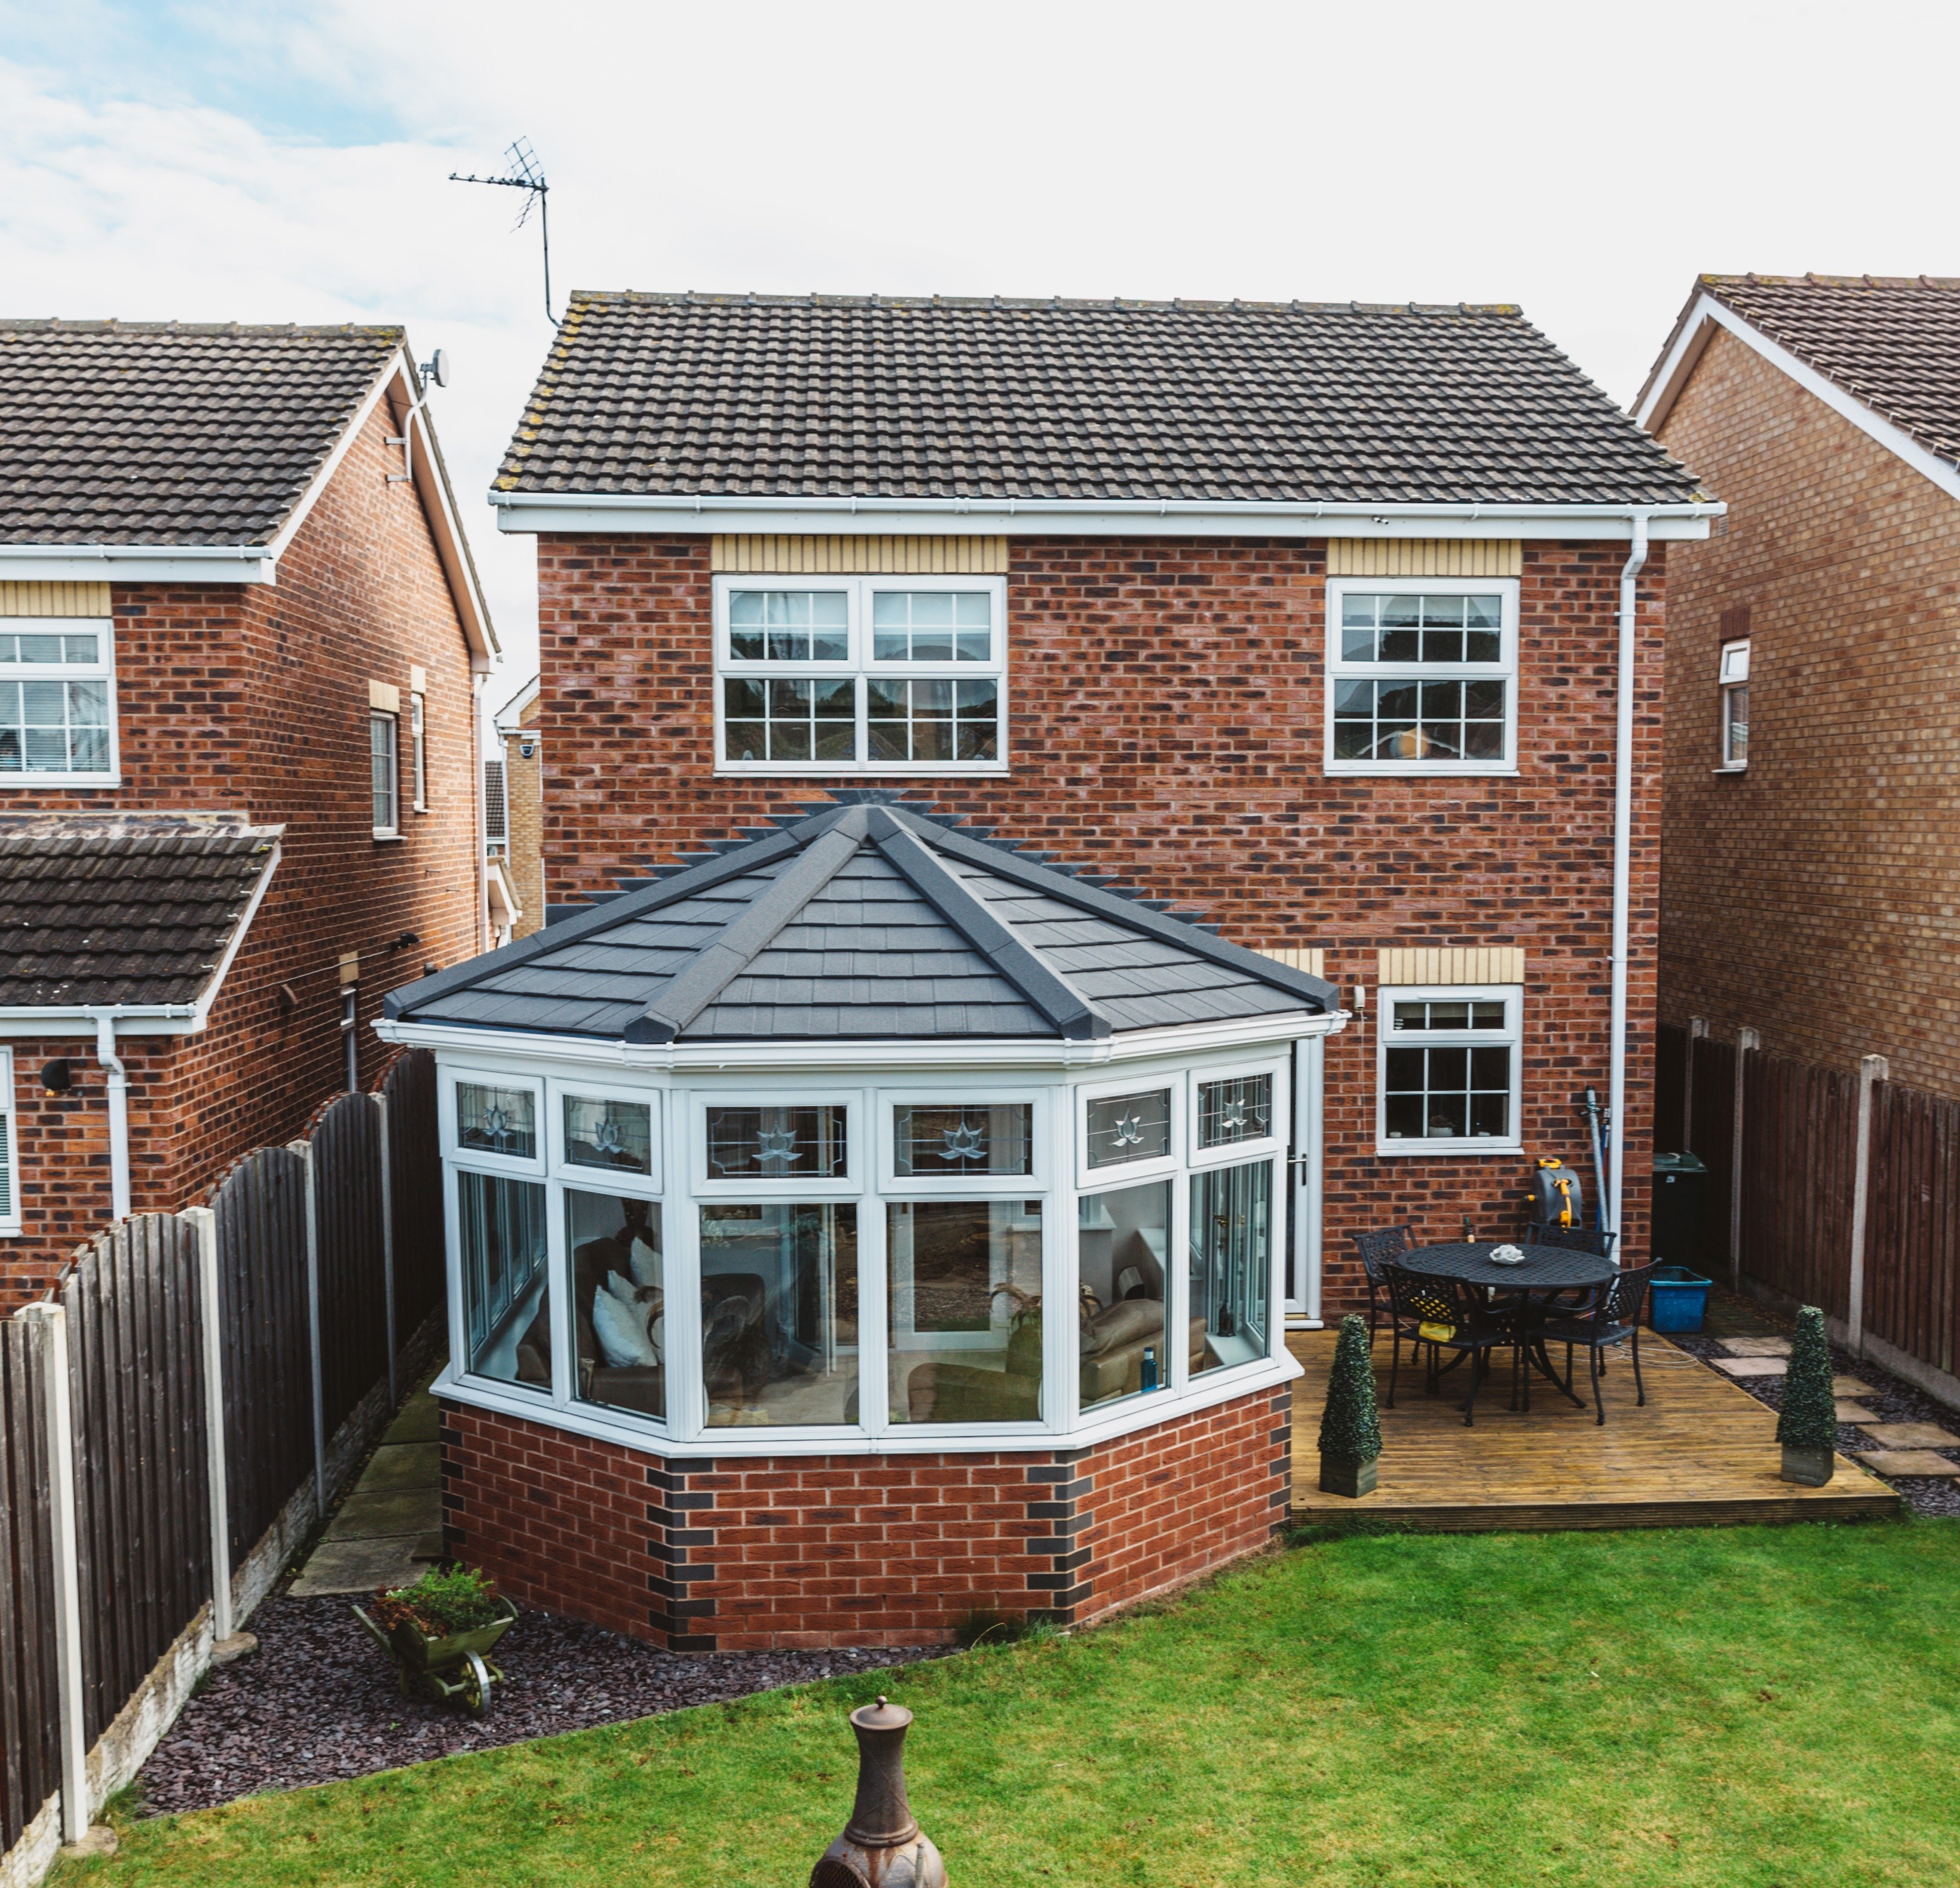 Solarframe Direct Limited Supalite Tiled Roof Systems